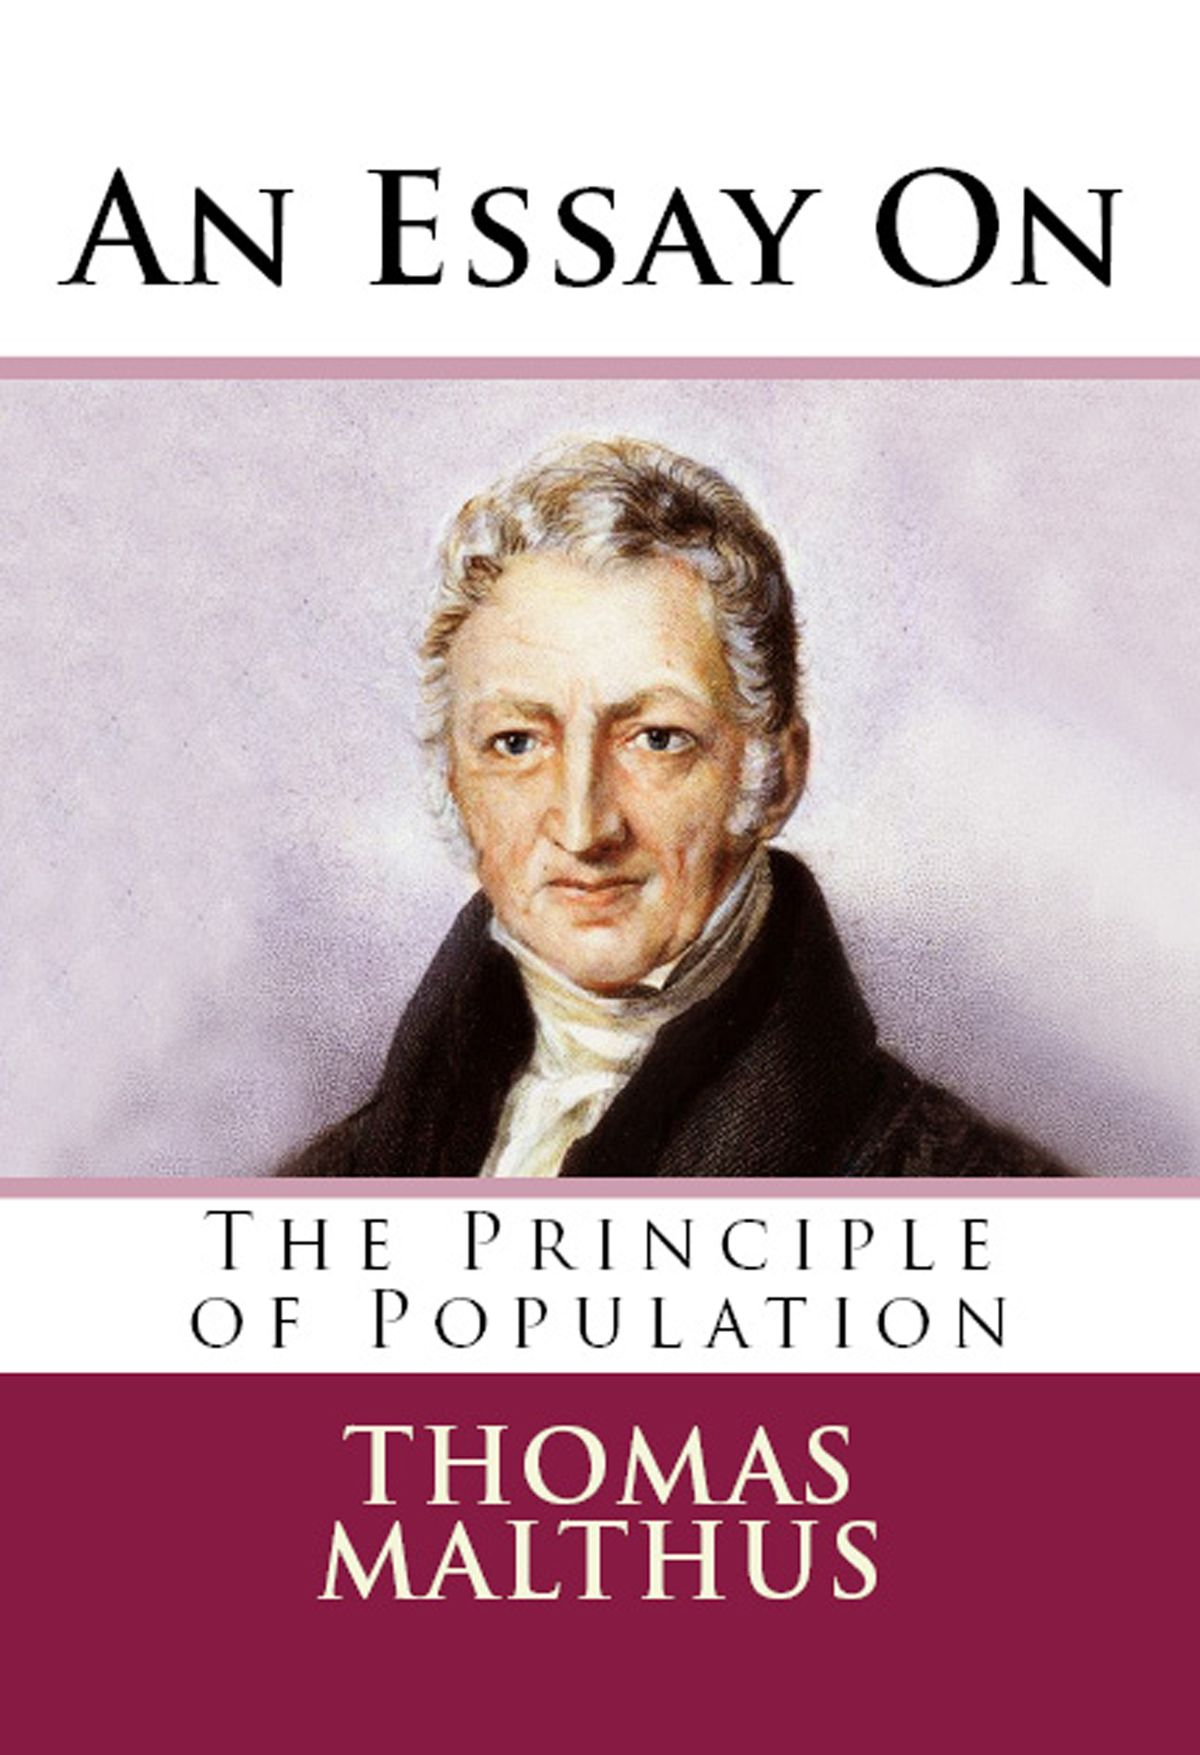 014 An Essay On The Principle Of Population Example Fascinating By Thomas Malthus Pdf In Concluded Which Following Full